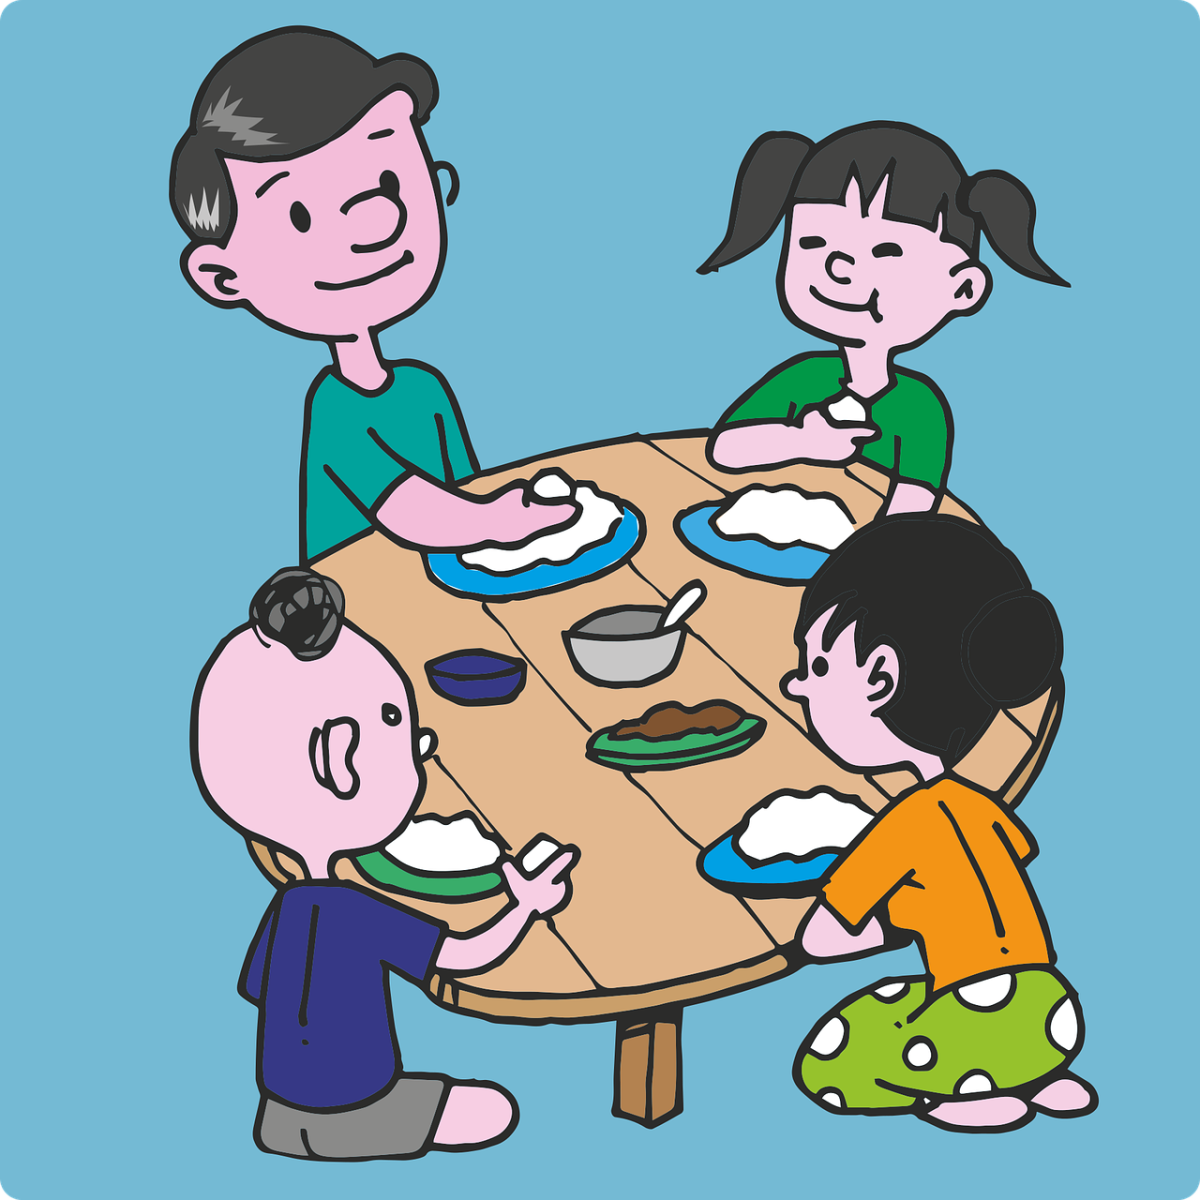 All in the Family:  Does Eating Meals with Family Decrease ObesityRisk?